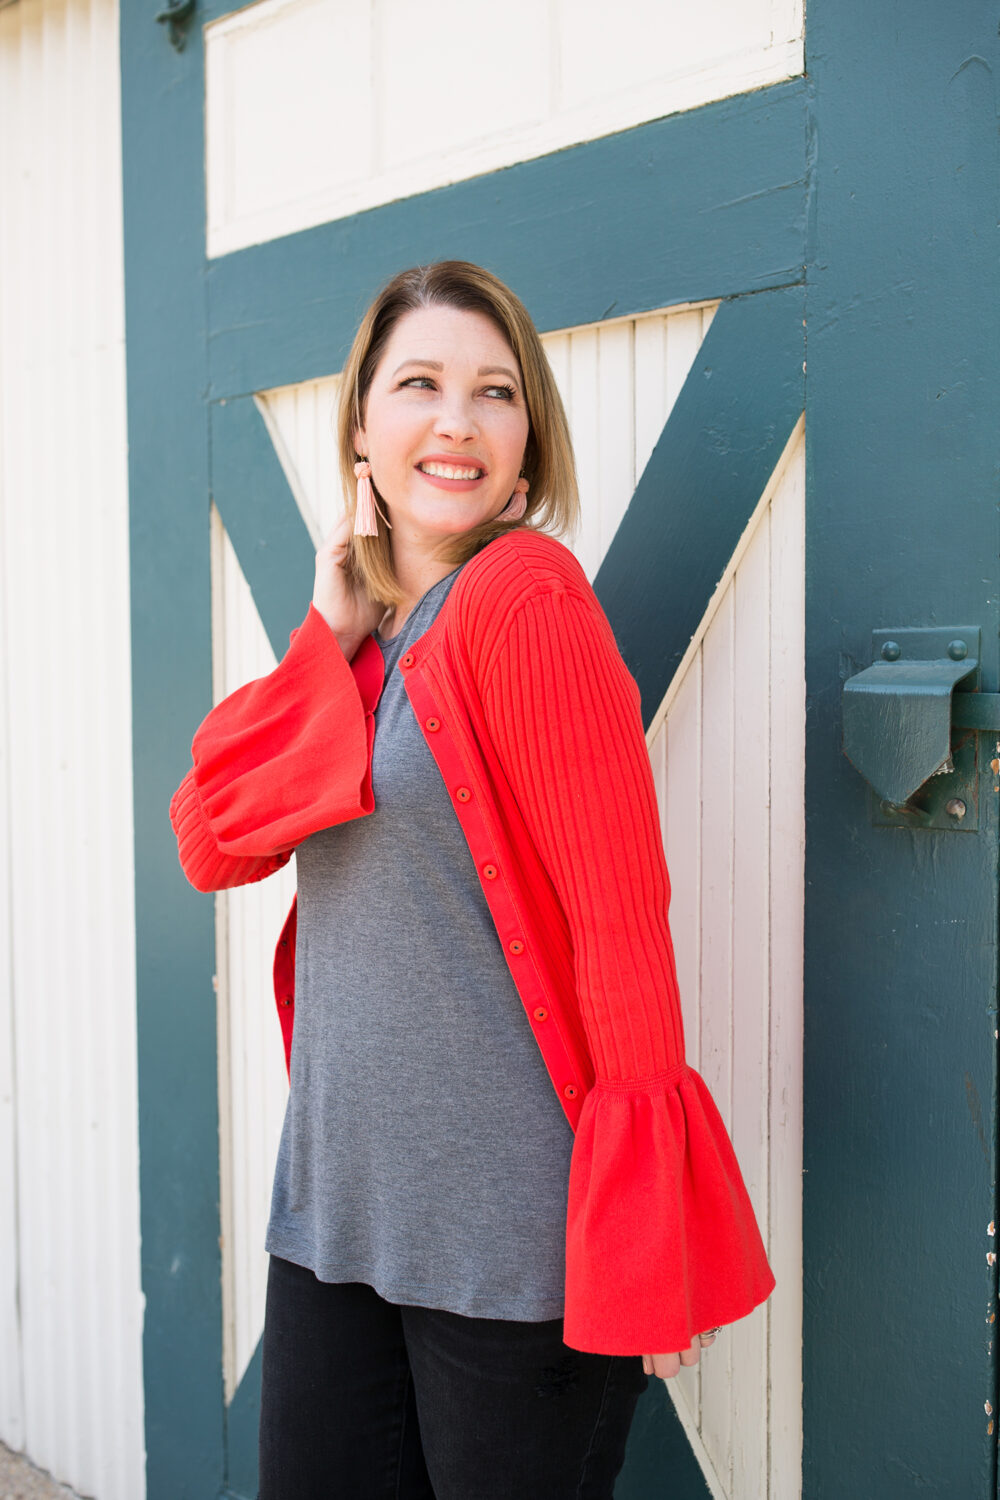 This bell sleeve red cardigan is the perfect staple piece for a spring wardrobe!